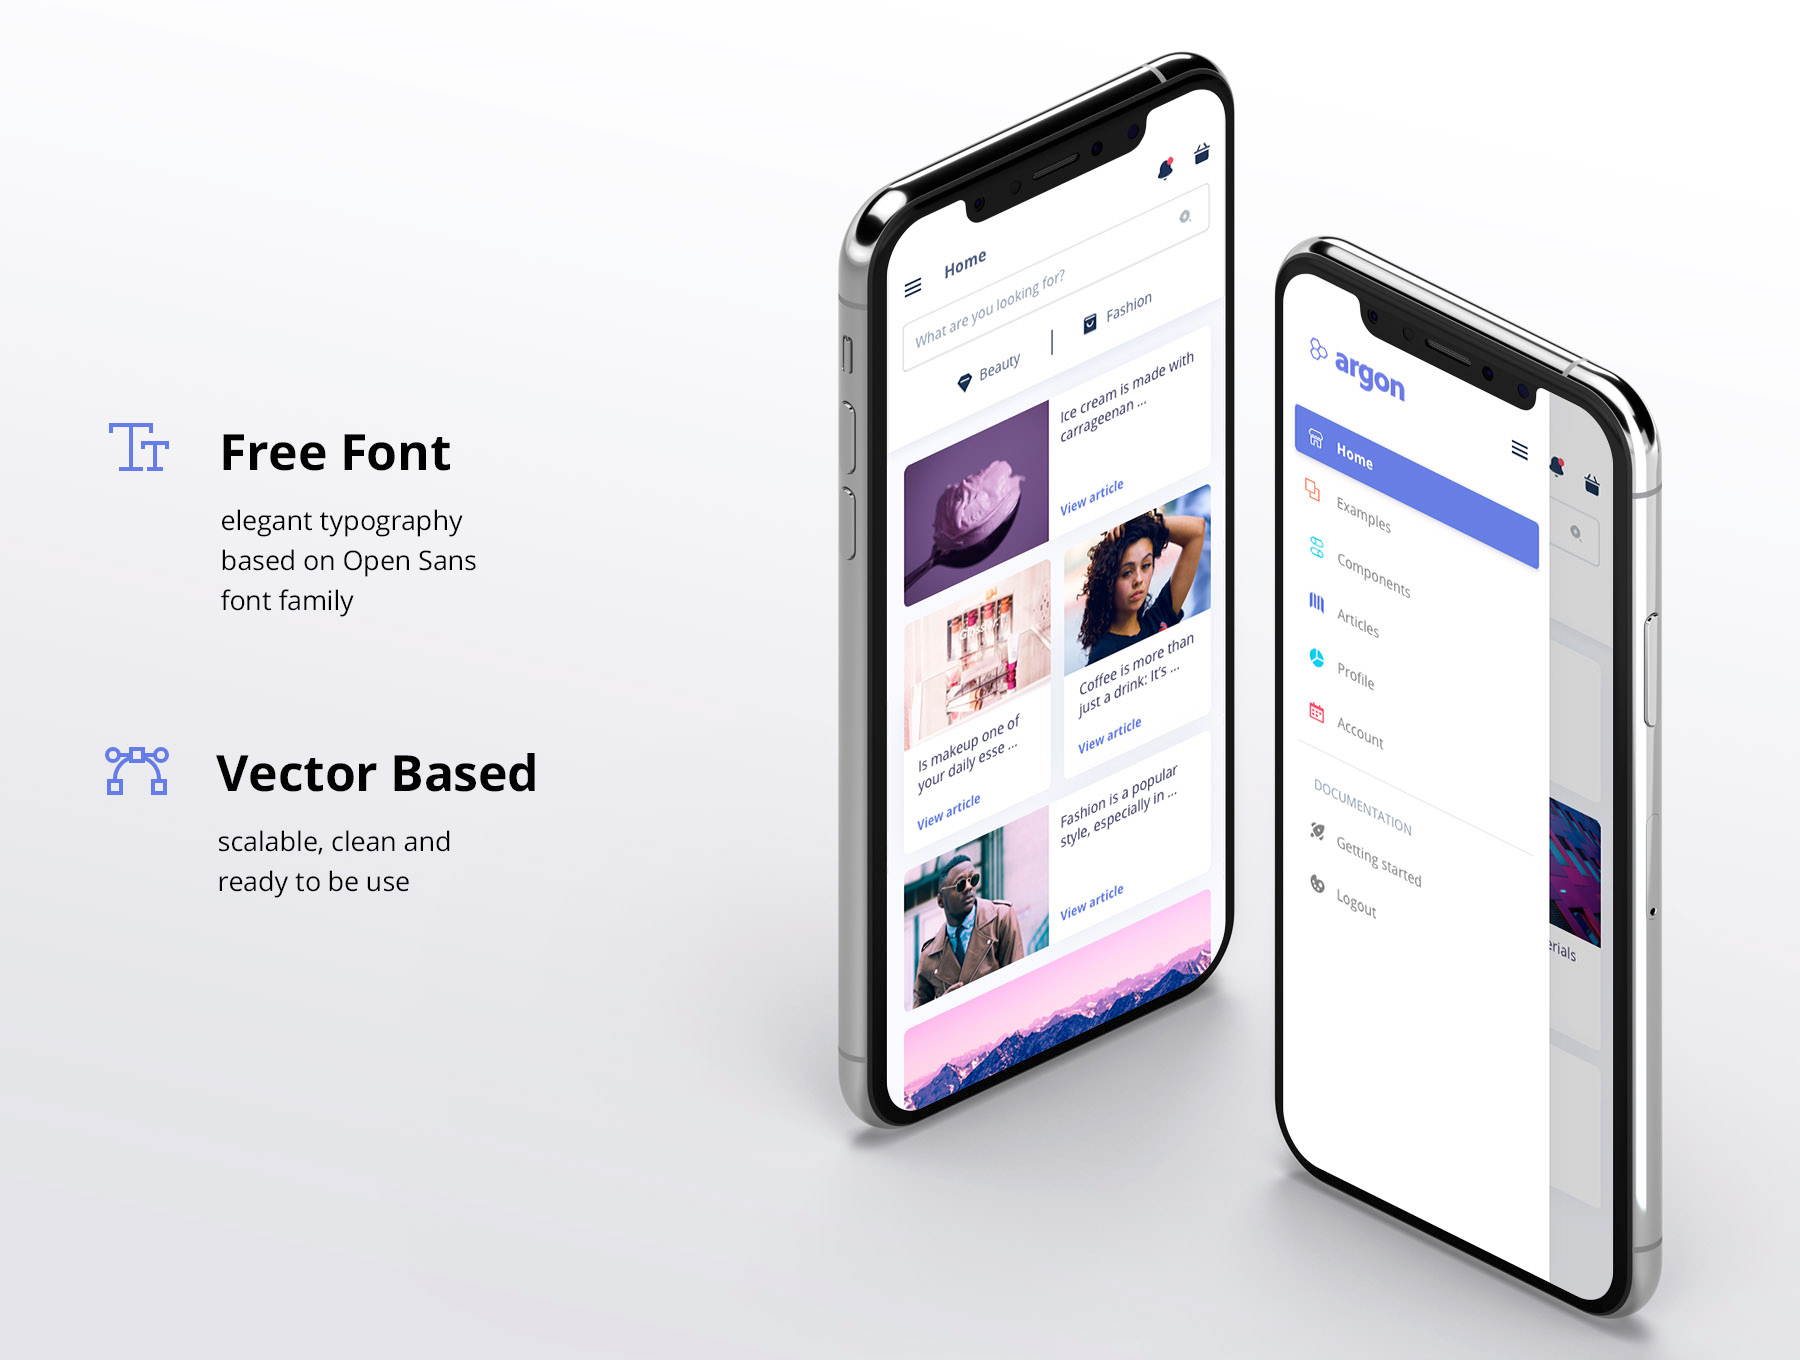 Argon Mobile UI Kit - Argon Mobile UI Kit accelerates the design process and helps you swiftly create fresh and complex designs. All the components are designed to look great together, following the same design pattern. Each screen is fully customizable, exceptionally easy to use and carefully assembled in Sketch, Figma, Adobe XD